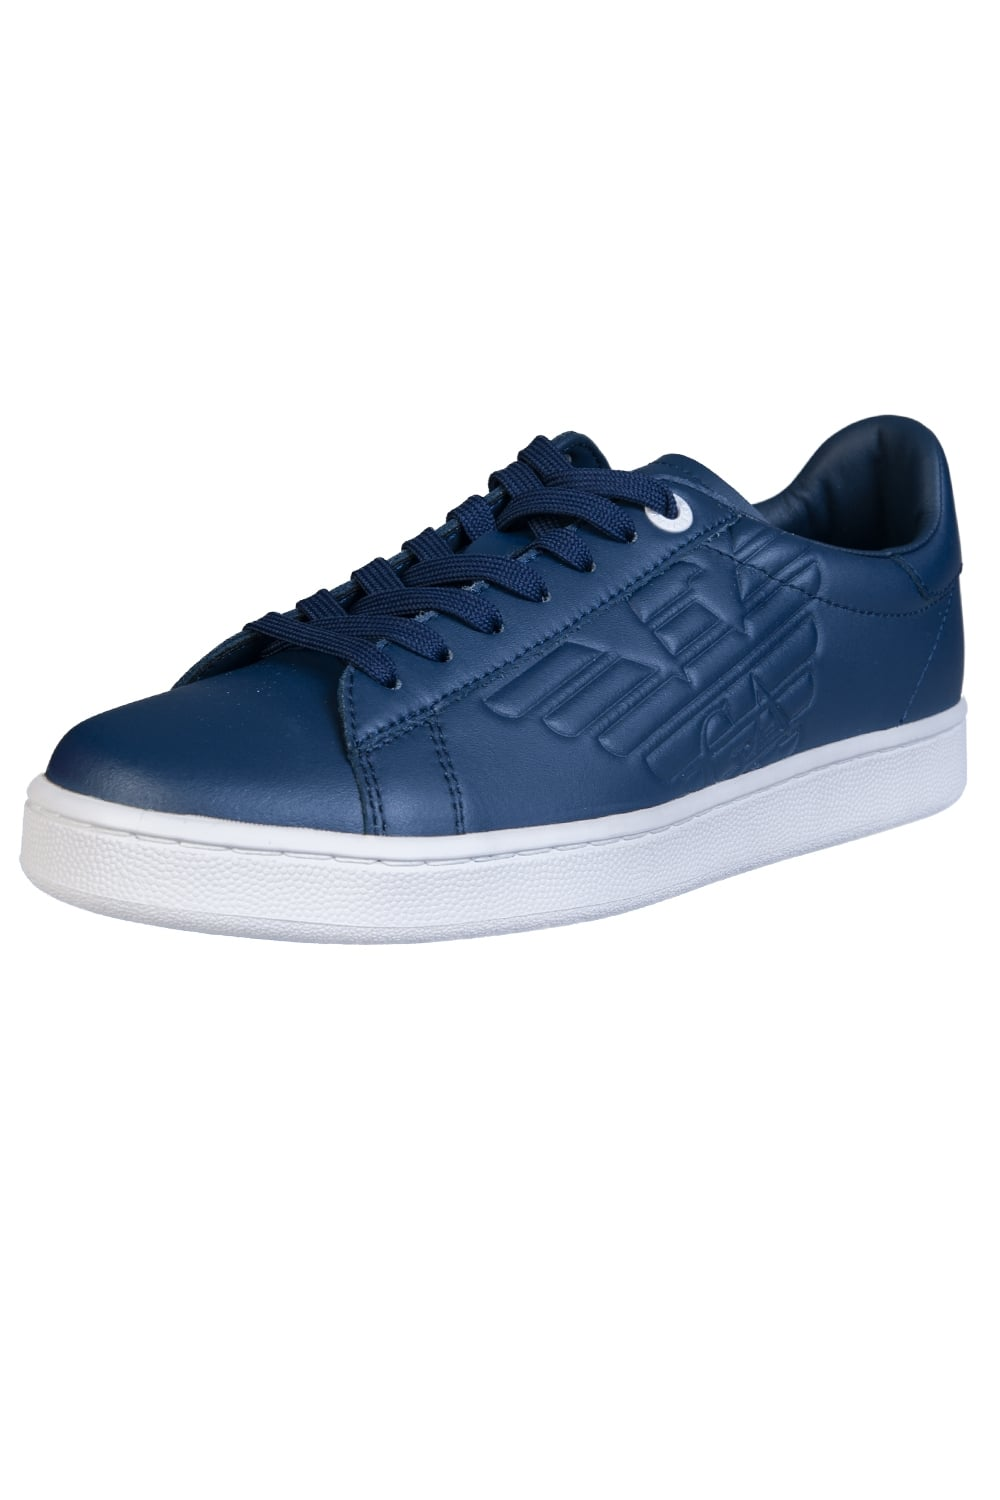 cc98d725737 EA7 Emporio Armani Trainers 248028 CC299 - Footwear from Sage Clothing UK